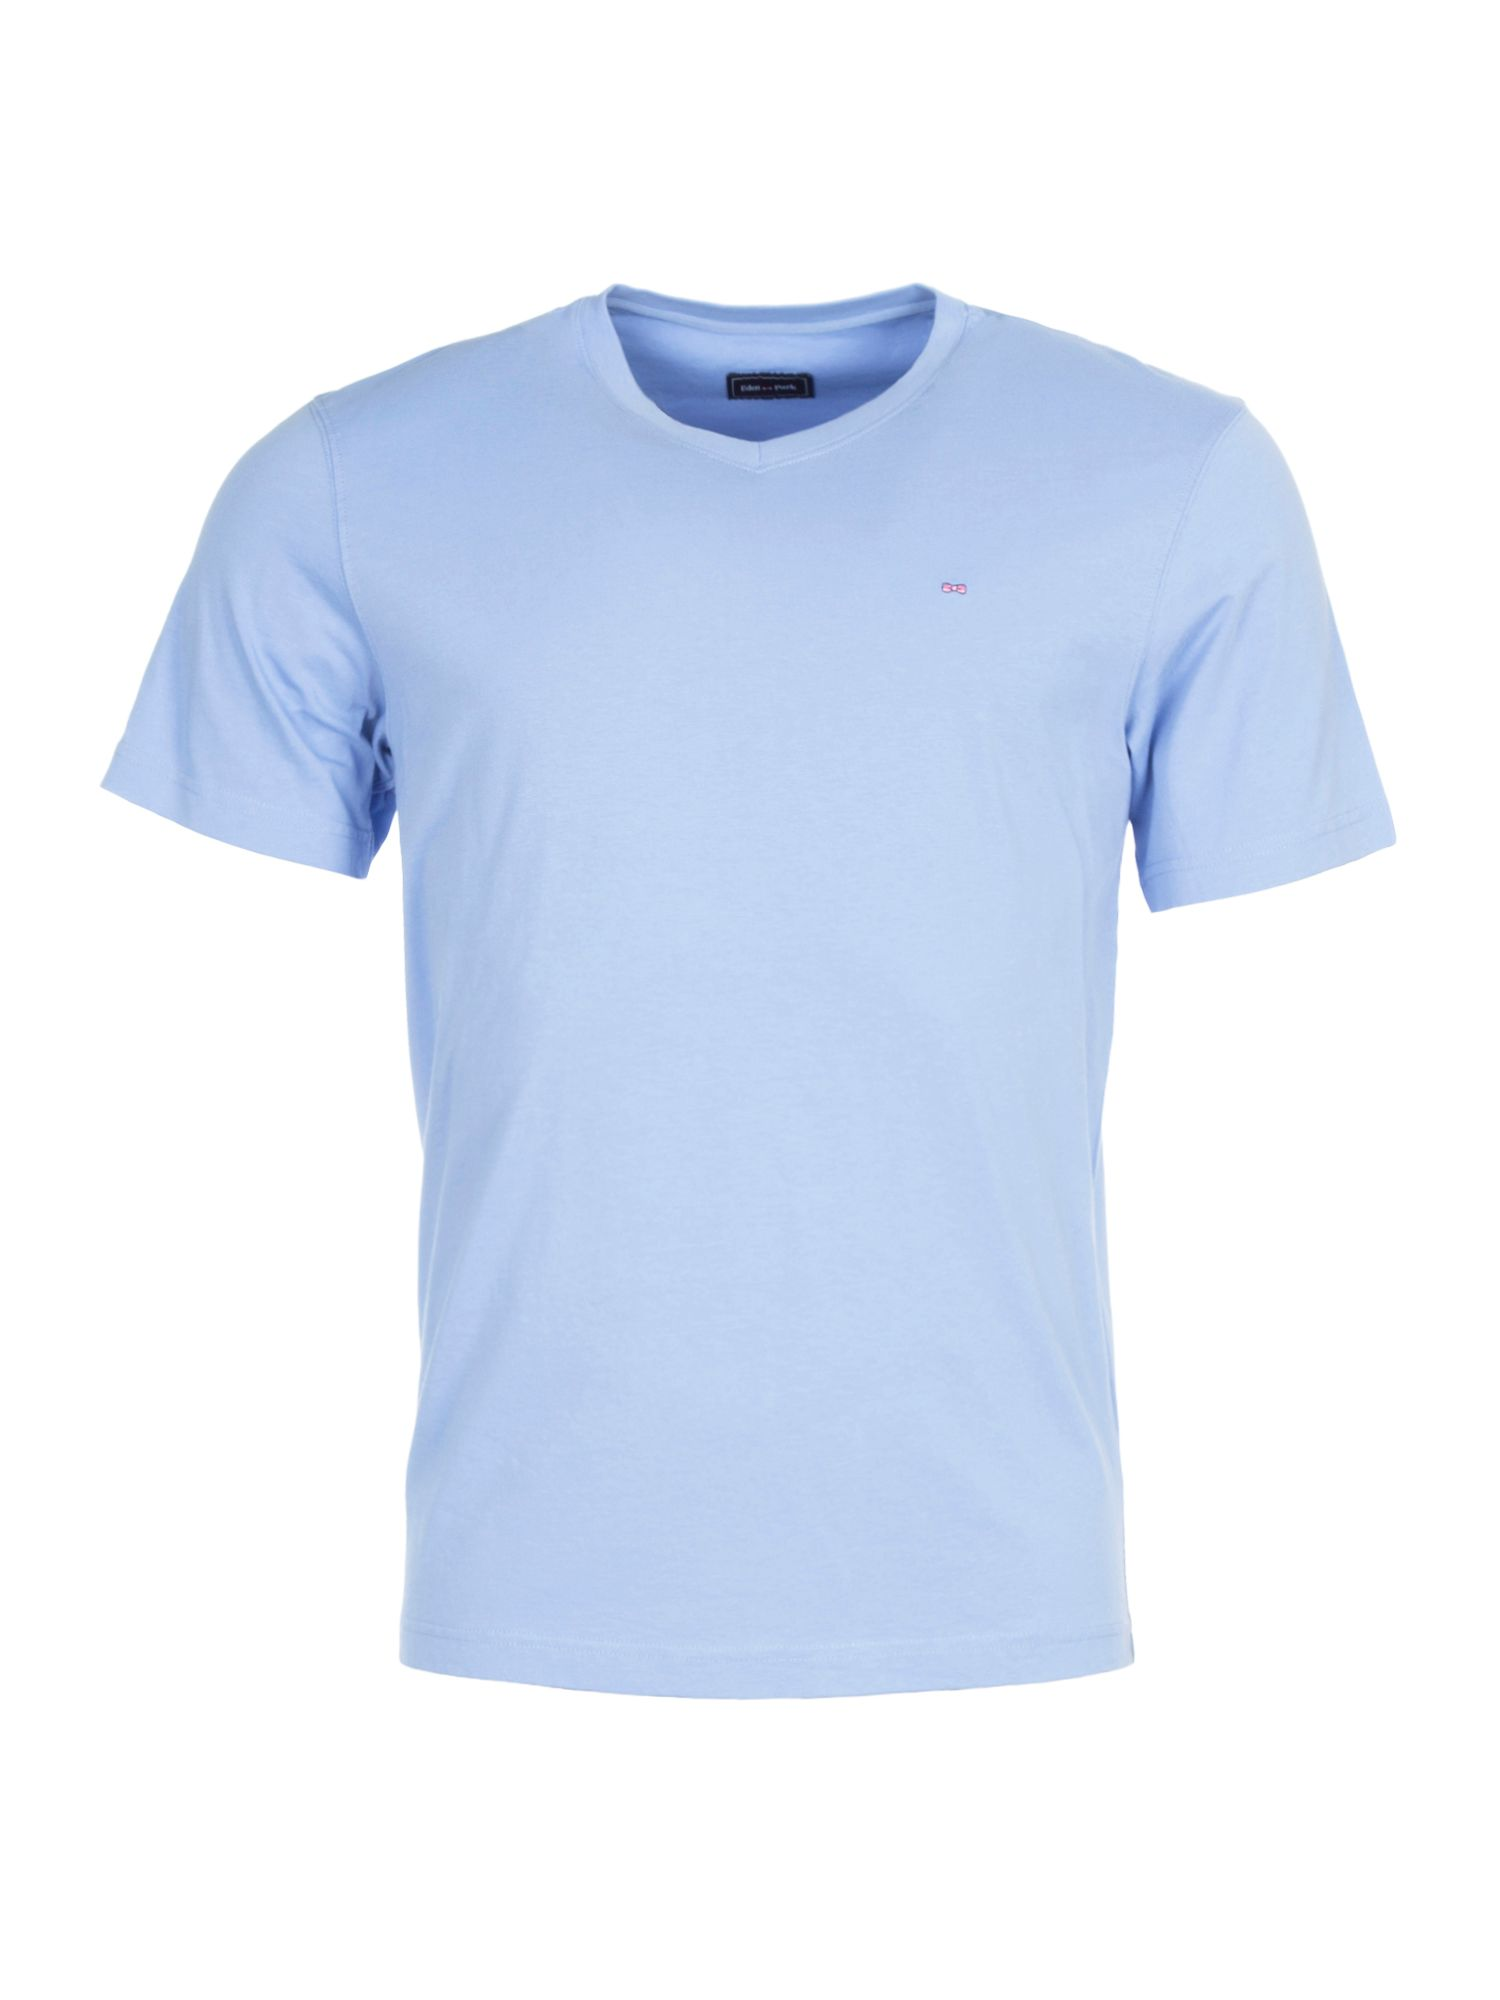 Men's Eden Park Classic Cotton T-Shirt, Blue